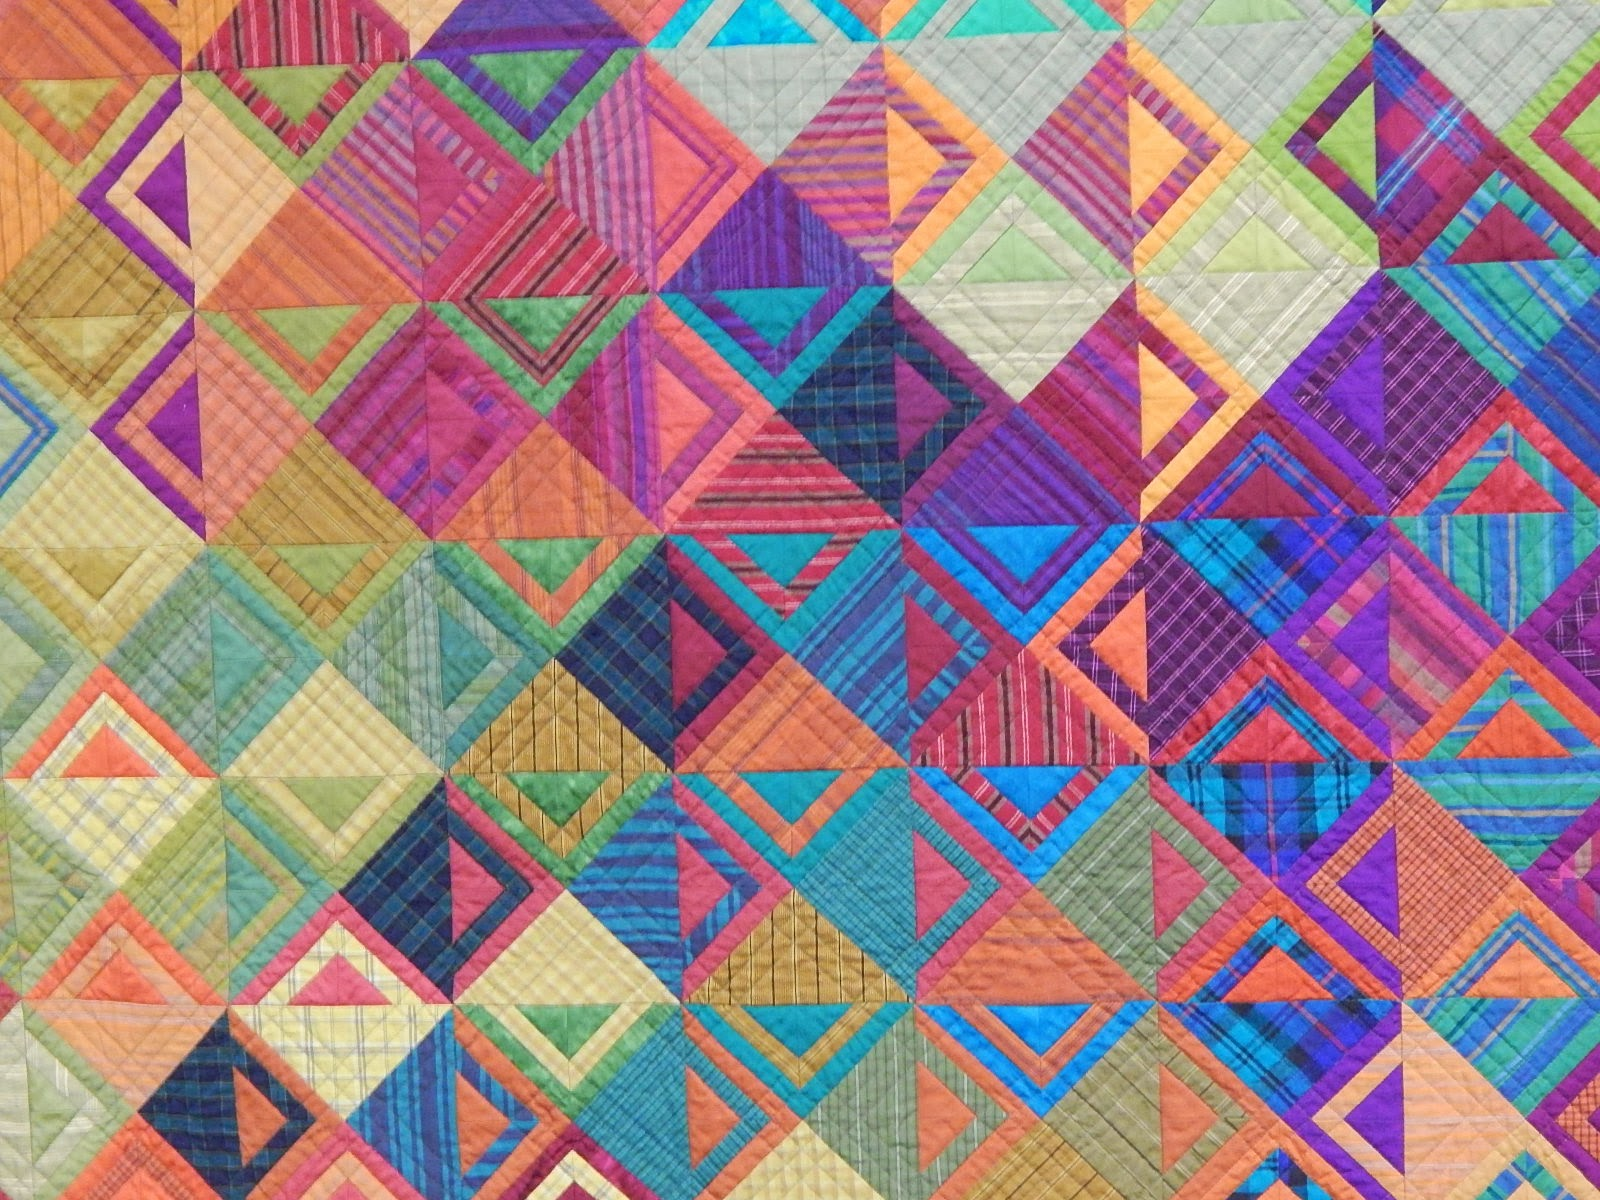 Basket weave pattern quilt : Quilting cactus needle quilts fabric